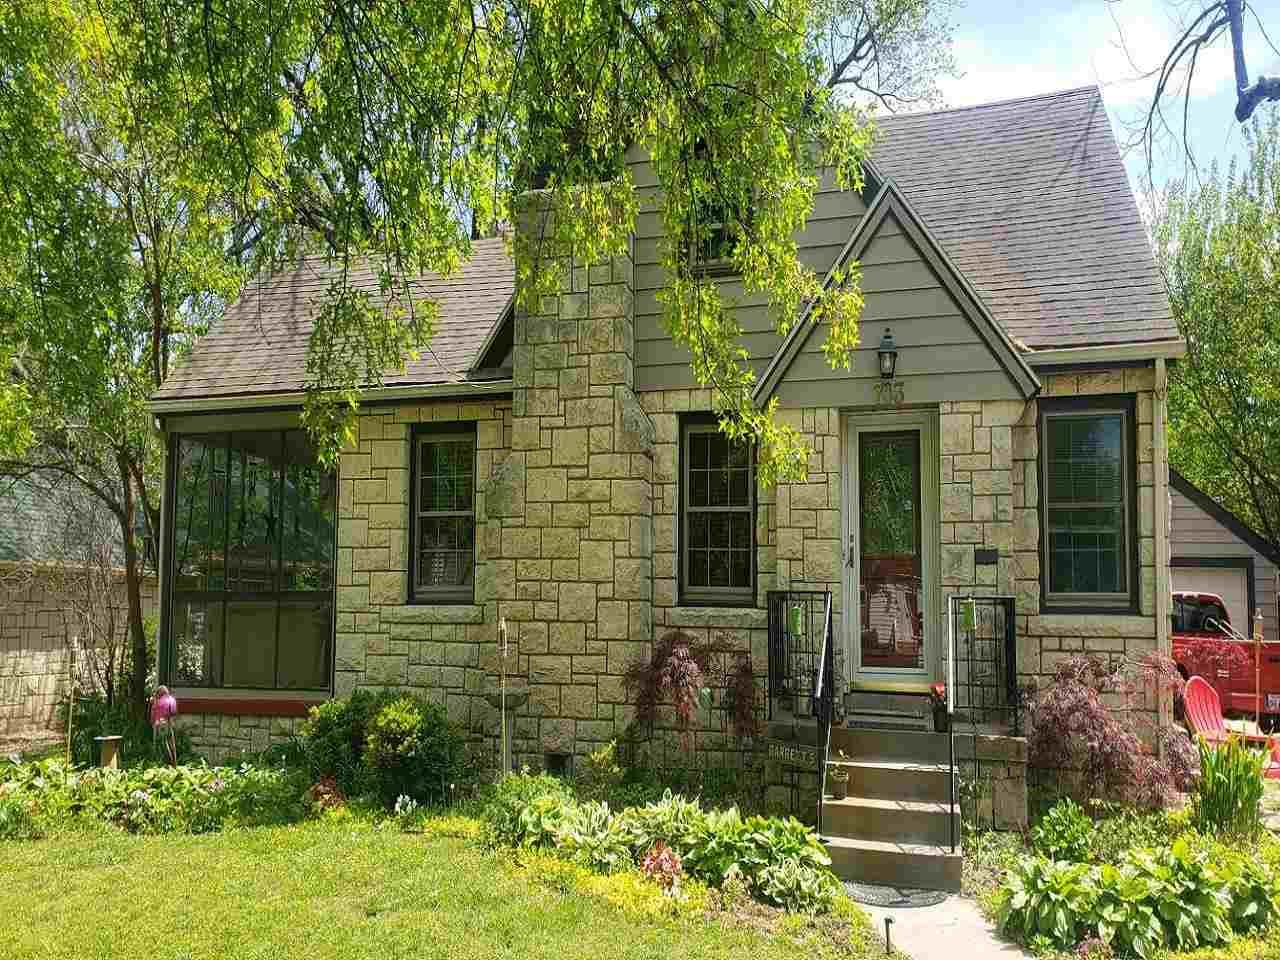 Photo of 703 W Chestnut Street, Junction City, KS 66441 (MLS # 20211401)